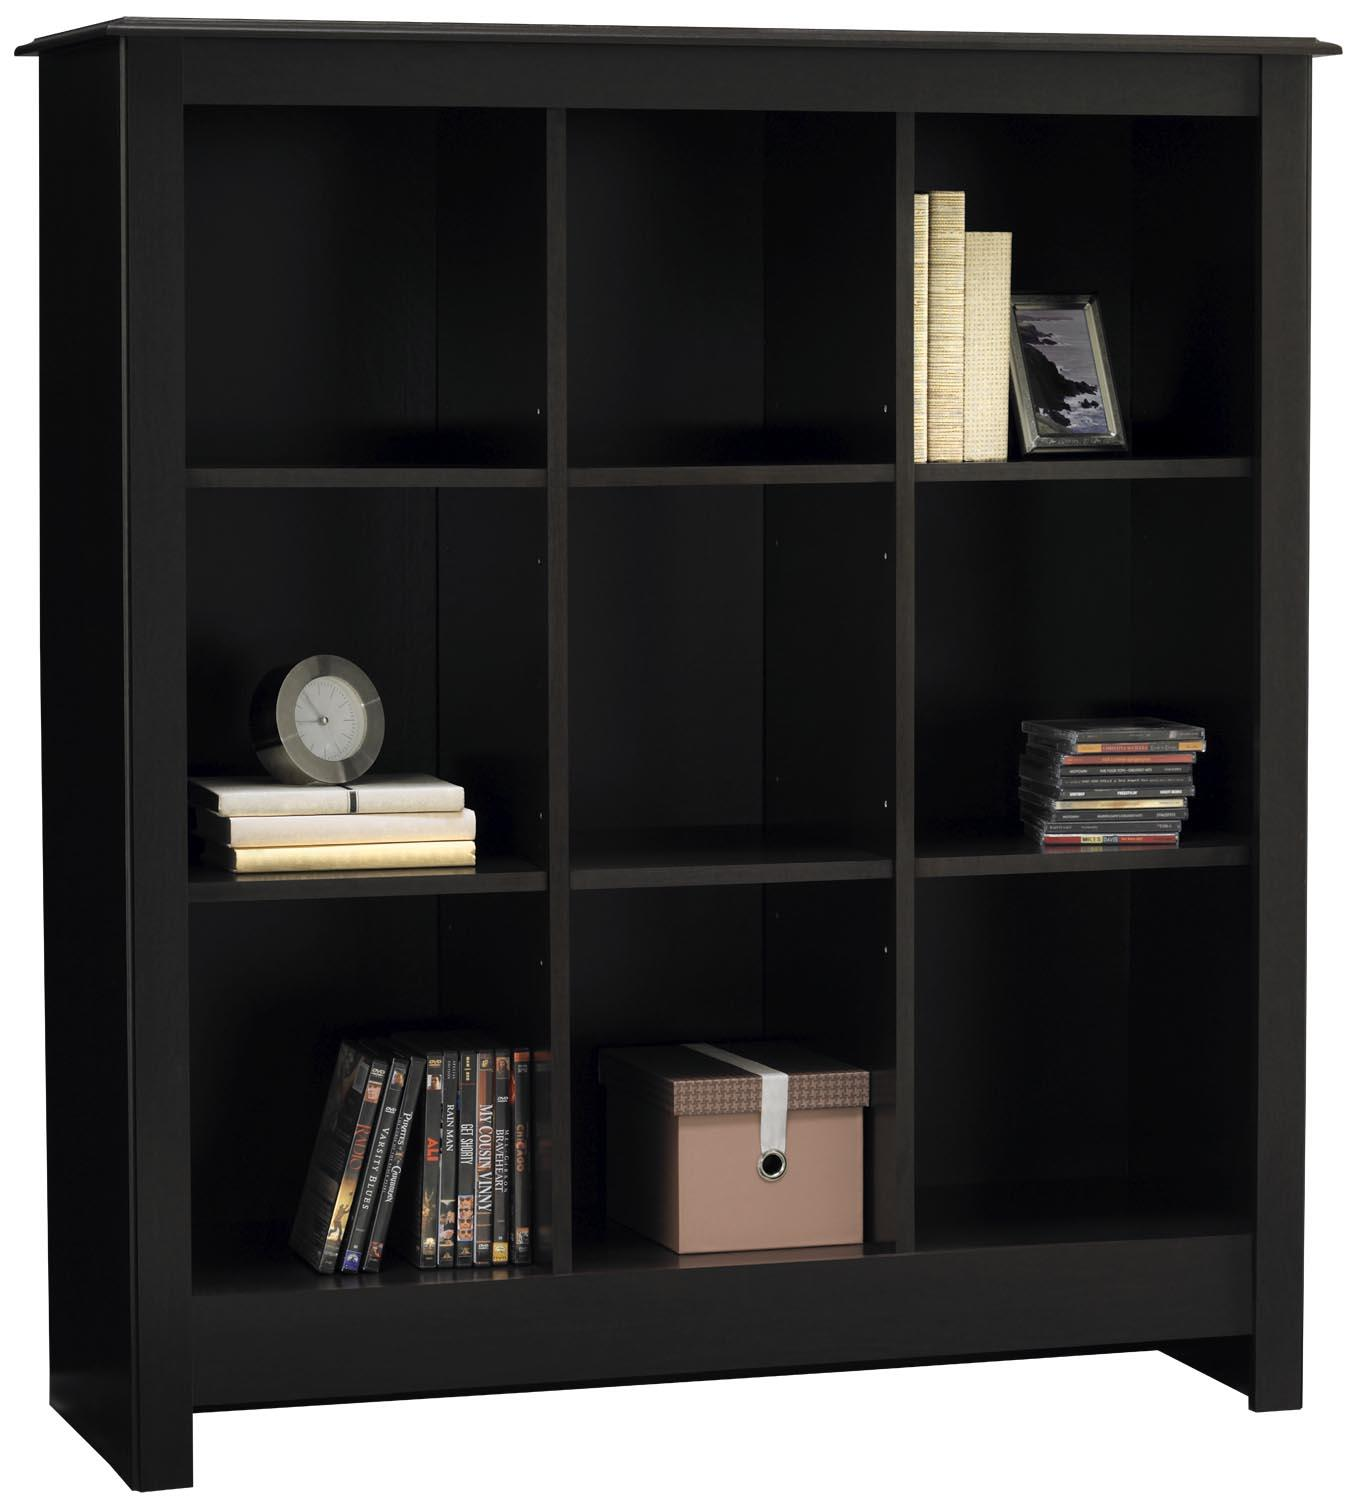 Ameriwood 9 Cube Wood Storage Cubby Bookcase In Black Forest Walmart Com